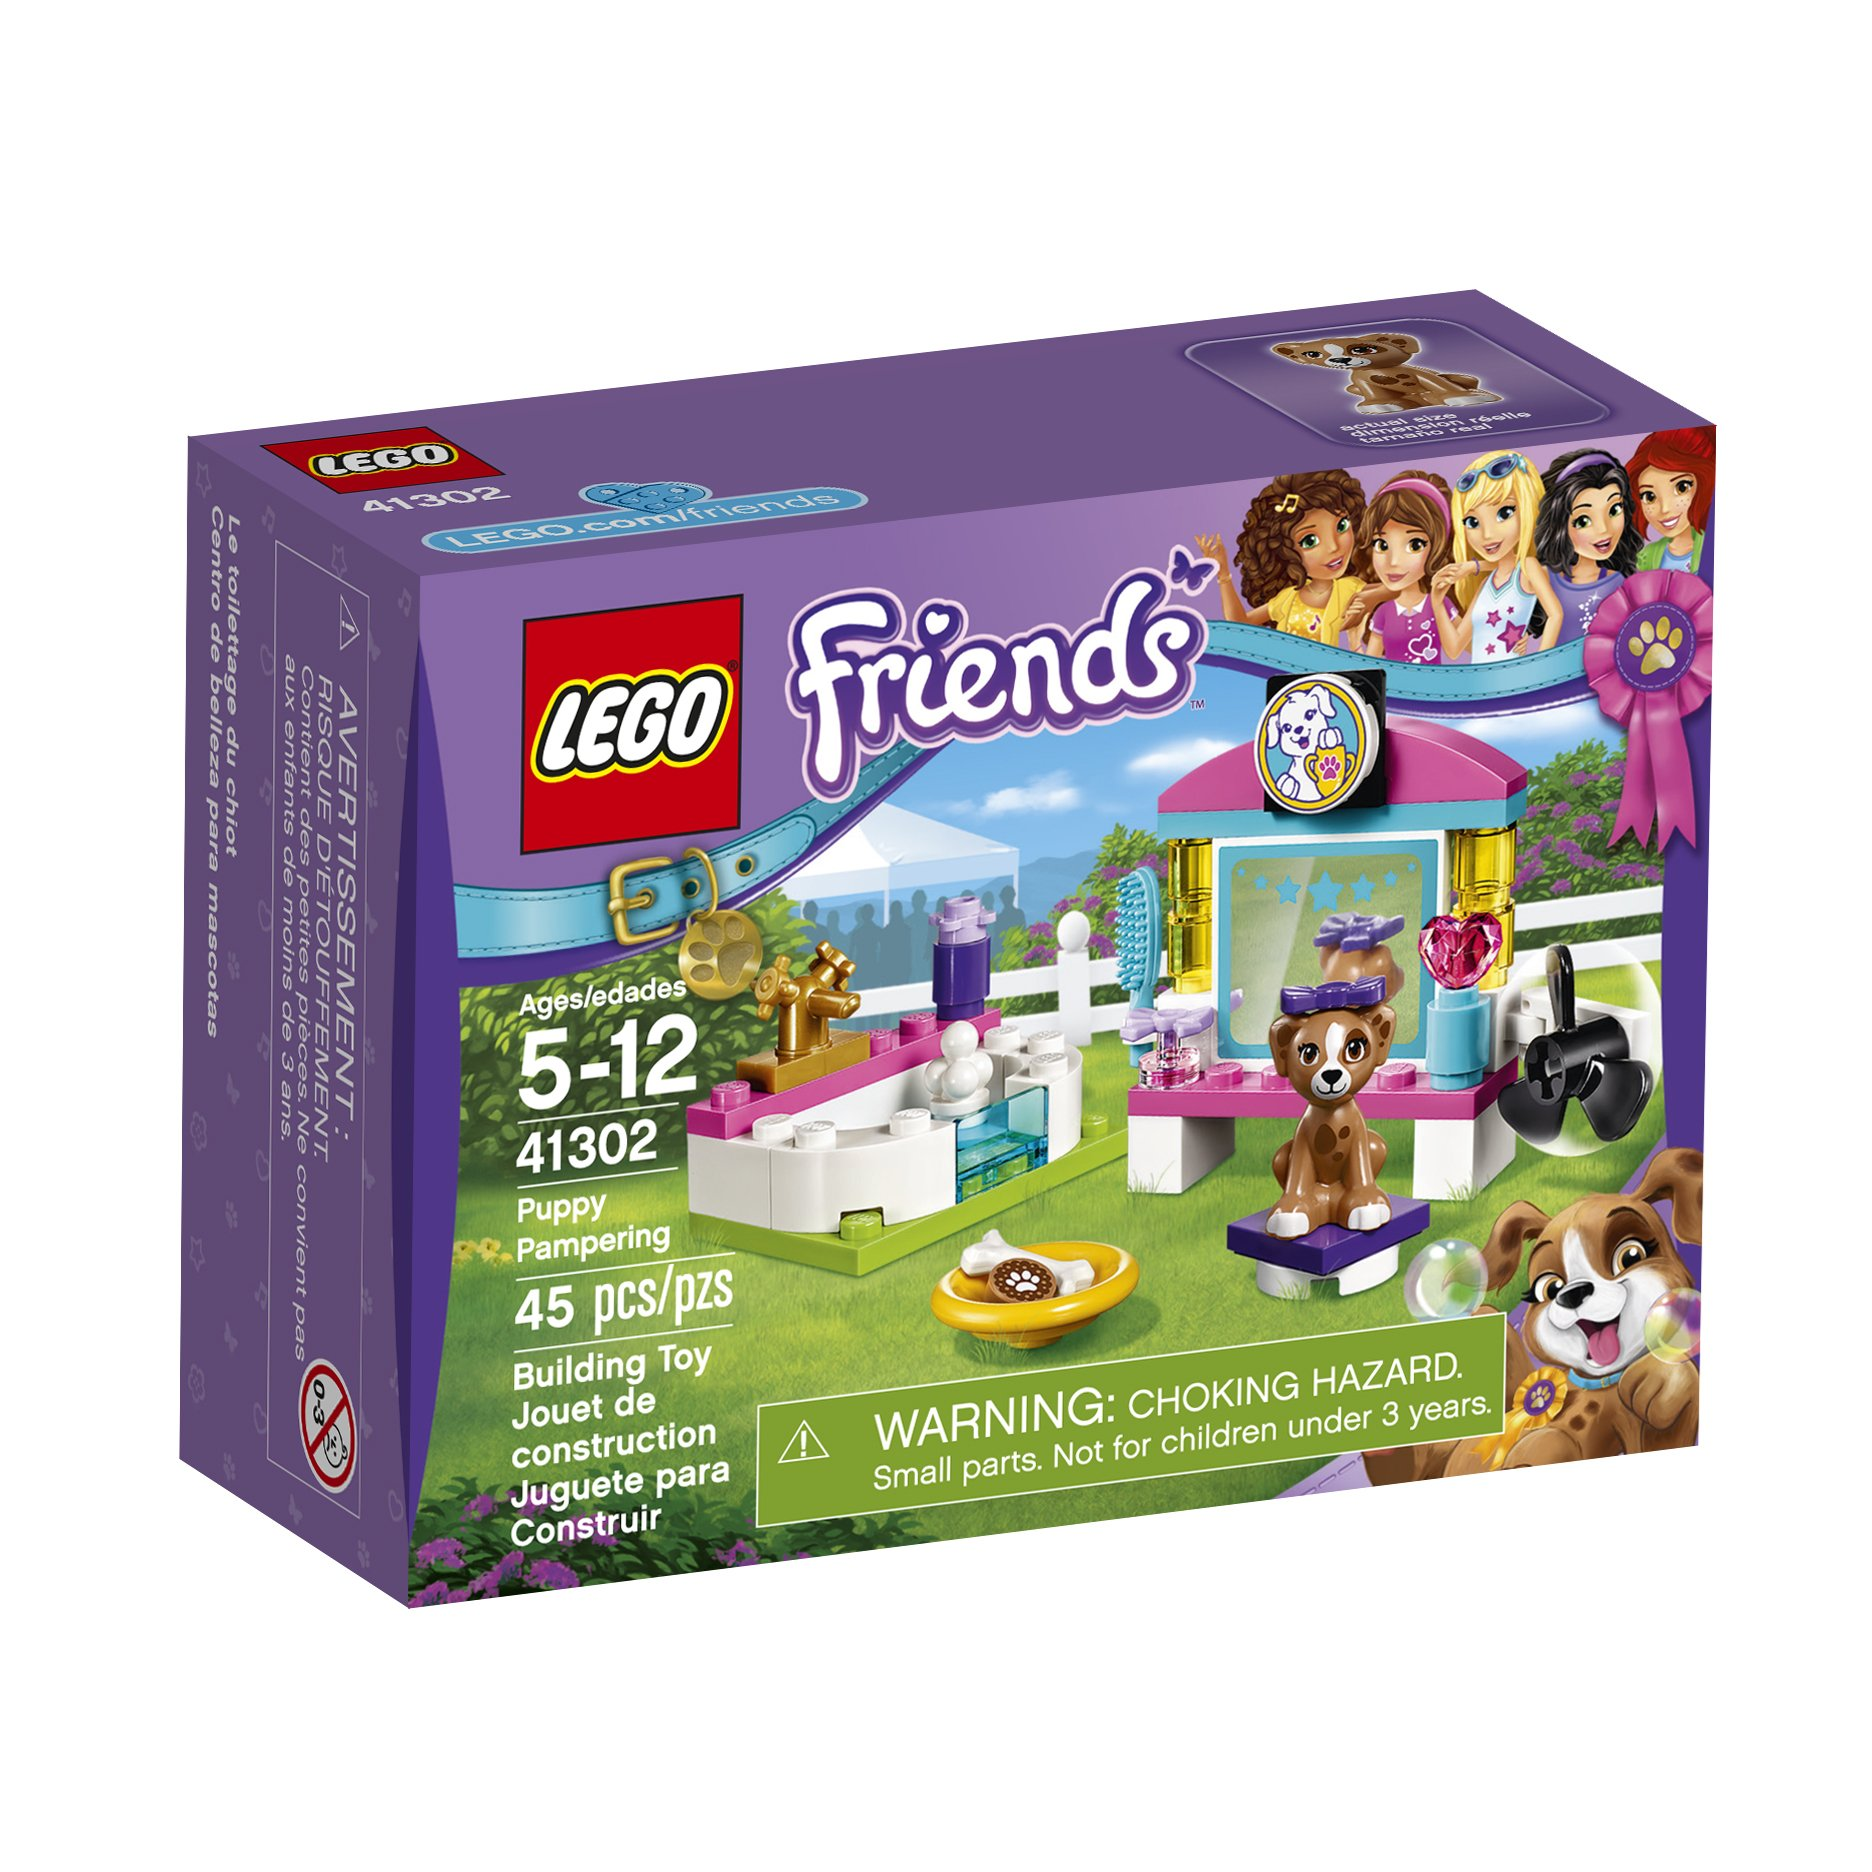 Puppy Pampering Lego Friends Kit